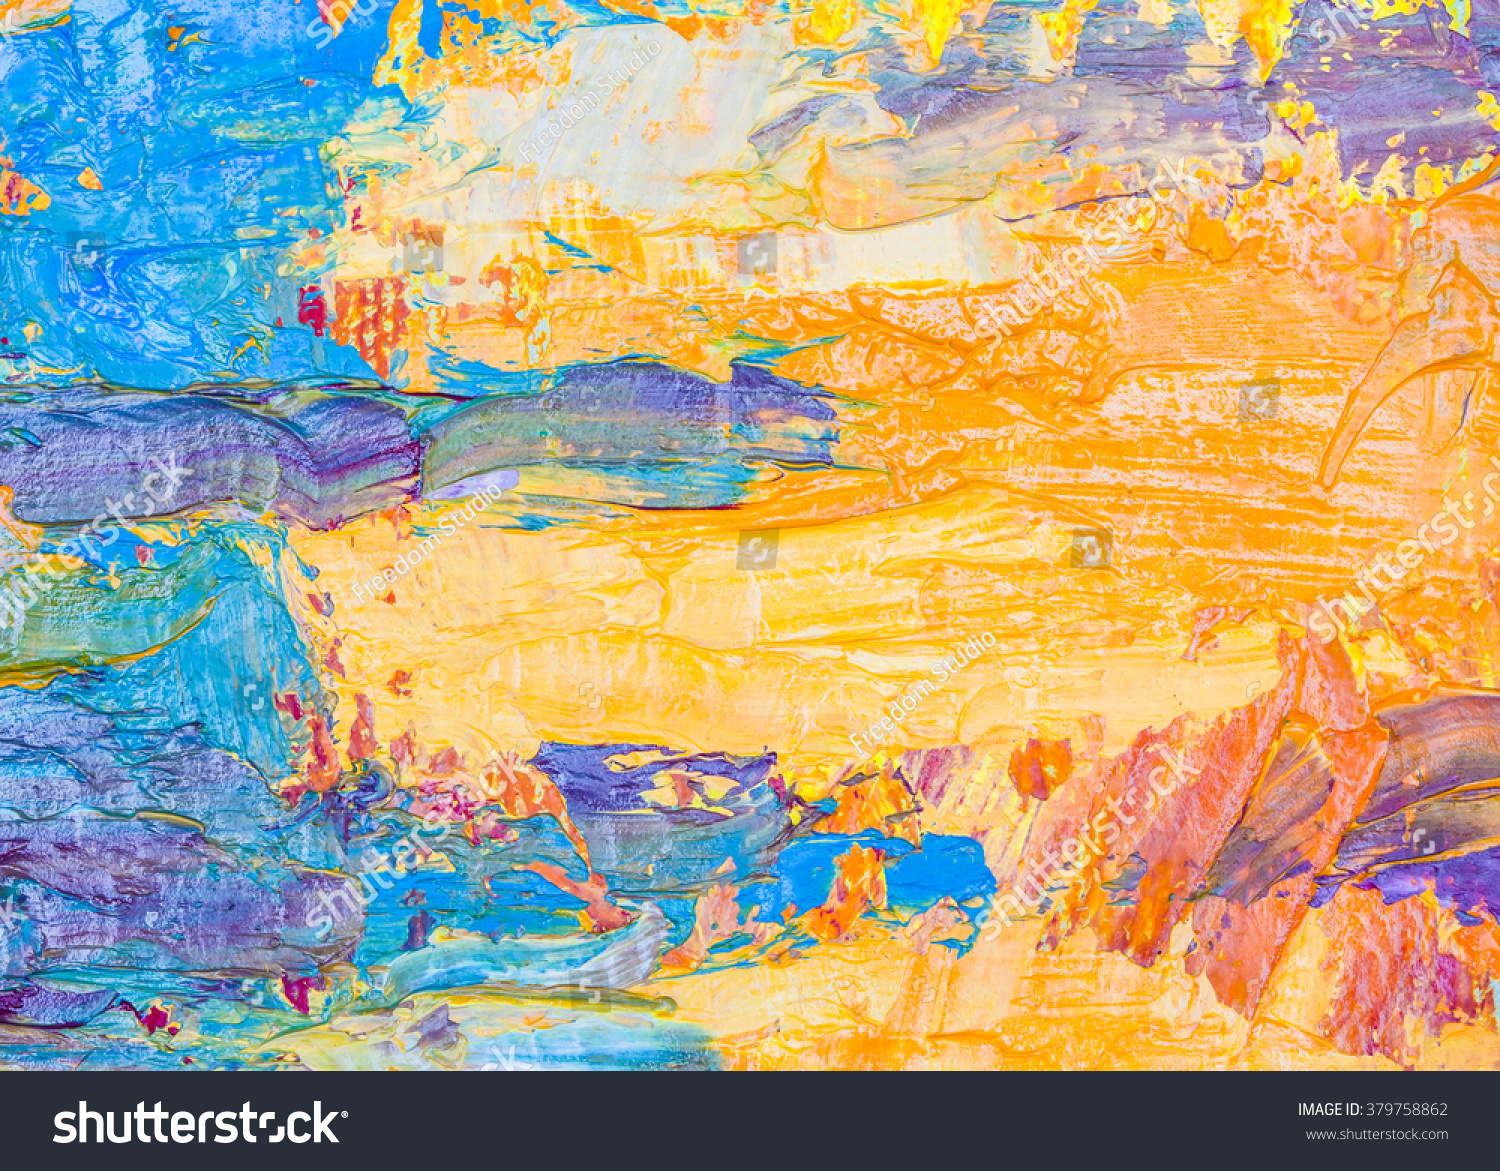 Original Colorful Abstract Oil Painting Brush Strokes Texture Background